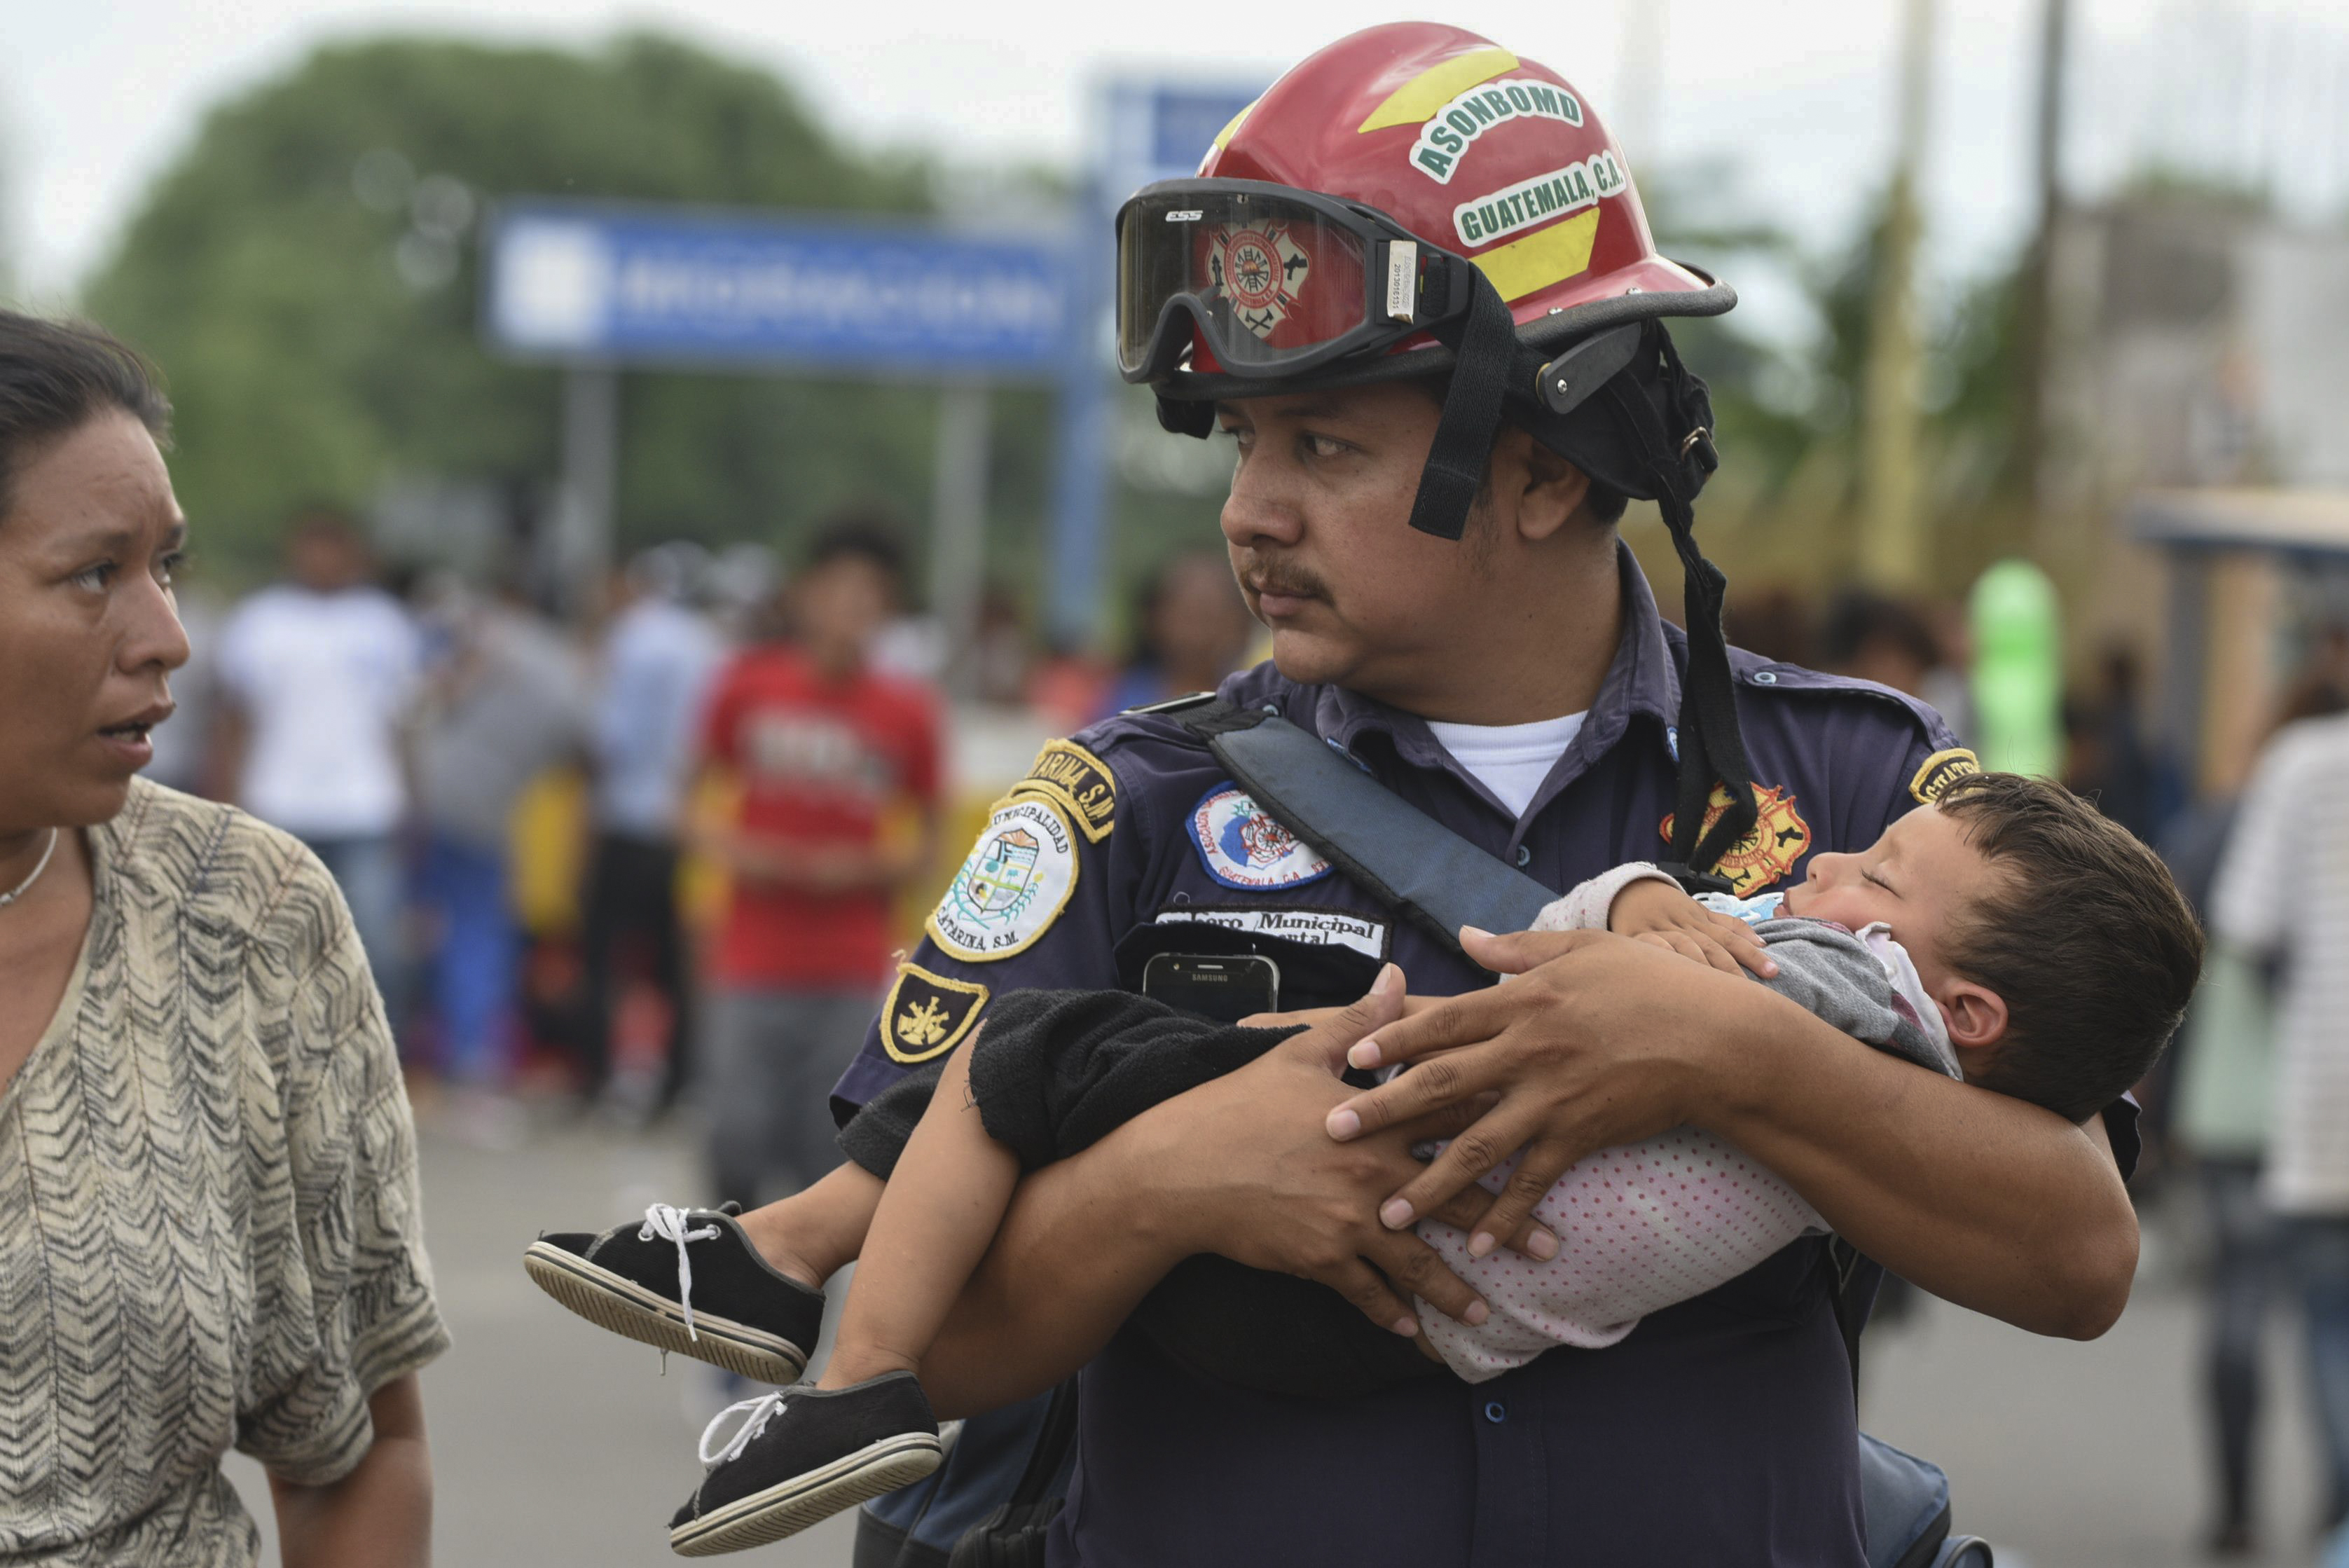 A Guatemalan firefighter carries an ailing baby, as an Honduran migrant caravan heading to the US, reaches the Guatemala-Mexico international bridge ... (Photo by ORLANDO SIERRA / AFP / Getty Images)